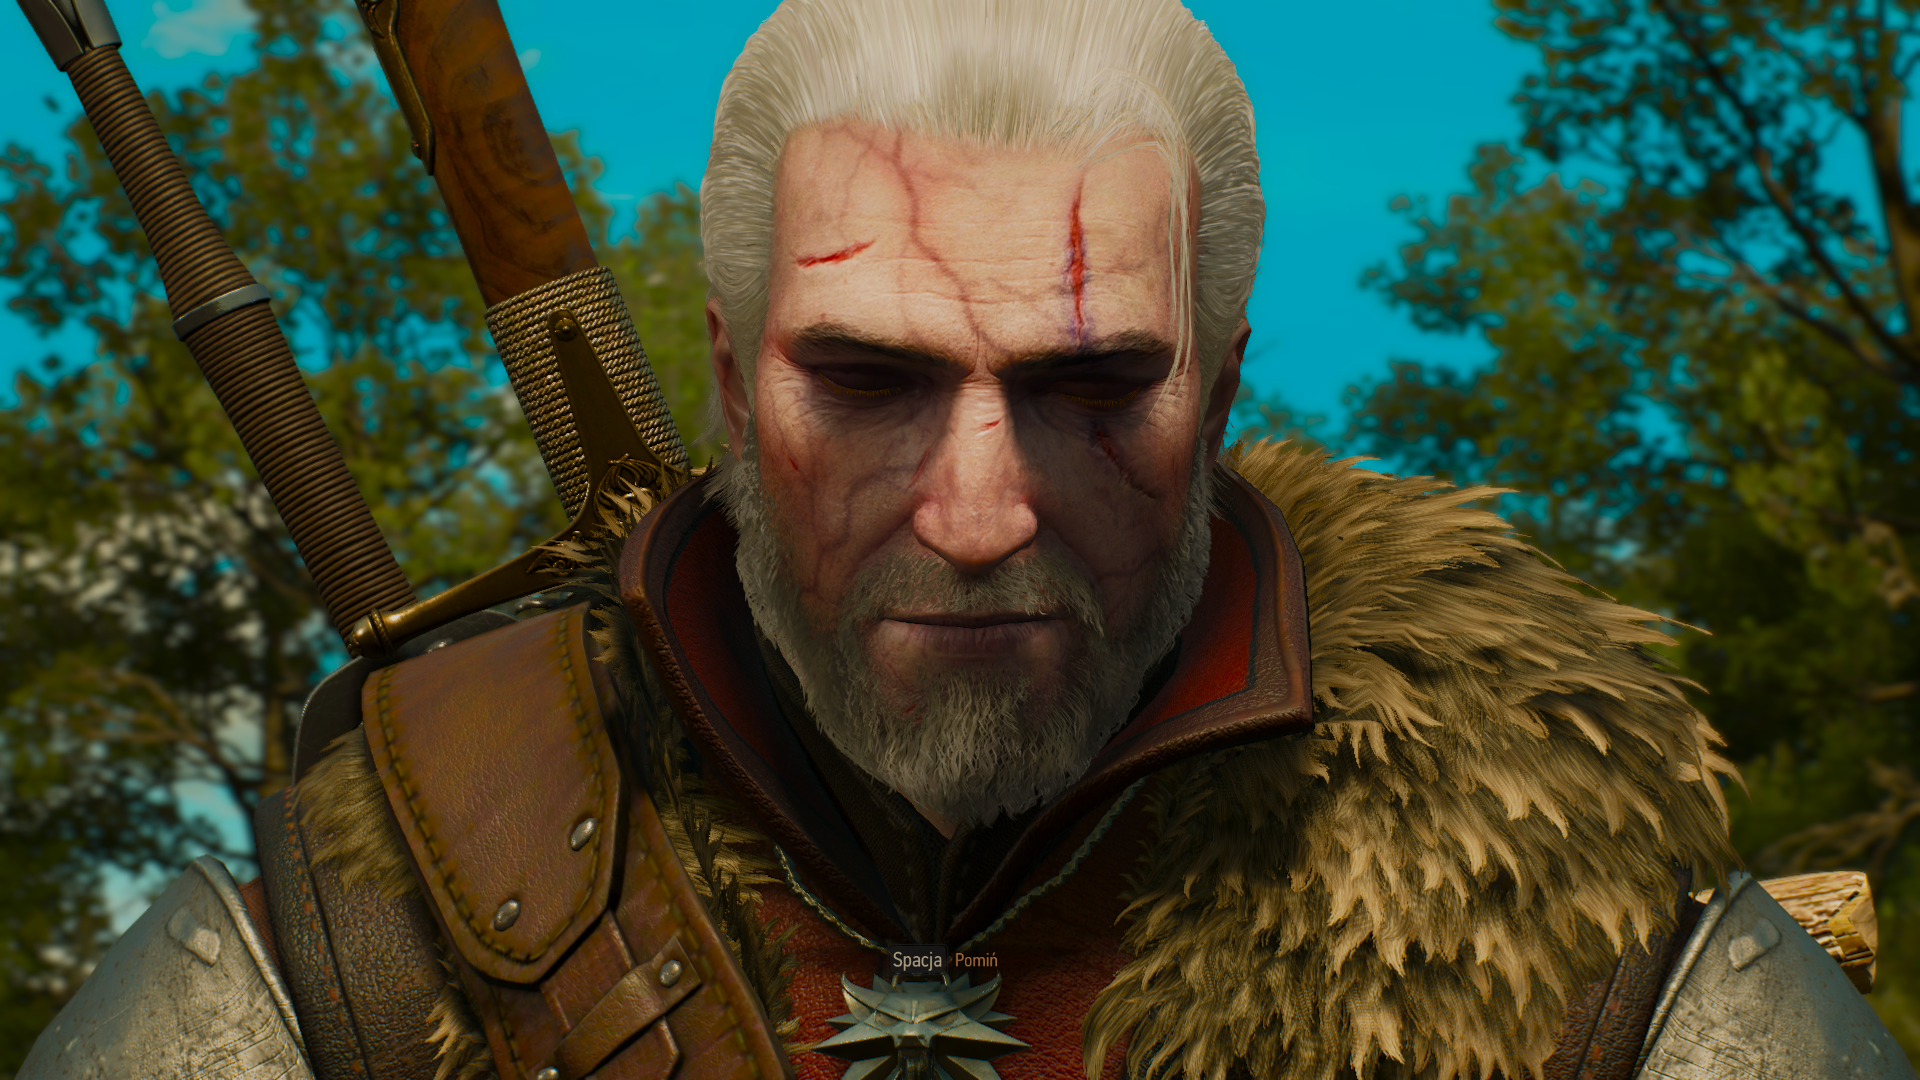 The Witcher 3 27.12.2018 22_23_00.png - Witcher 3: Wild Hunt, the